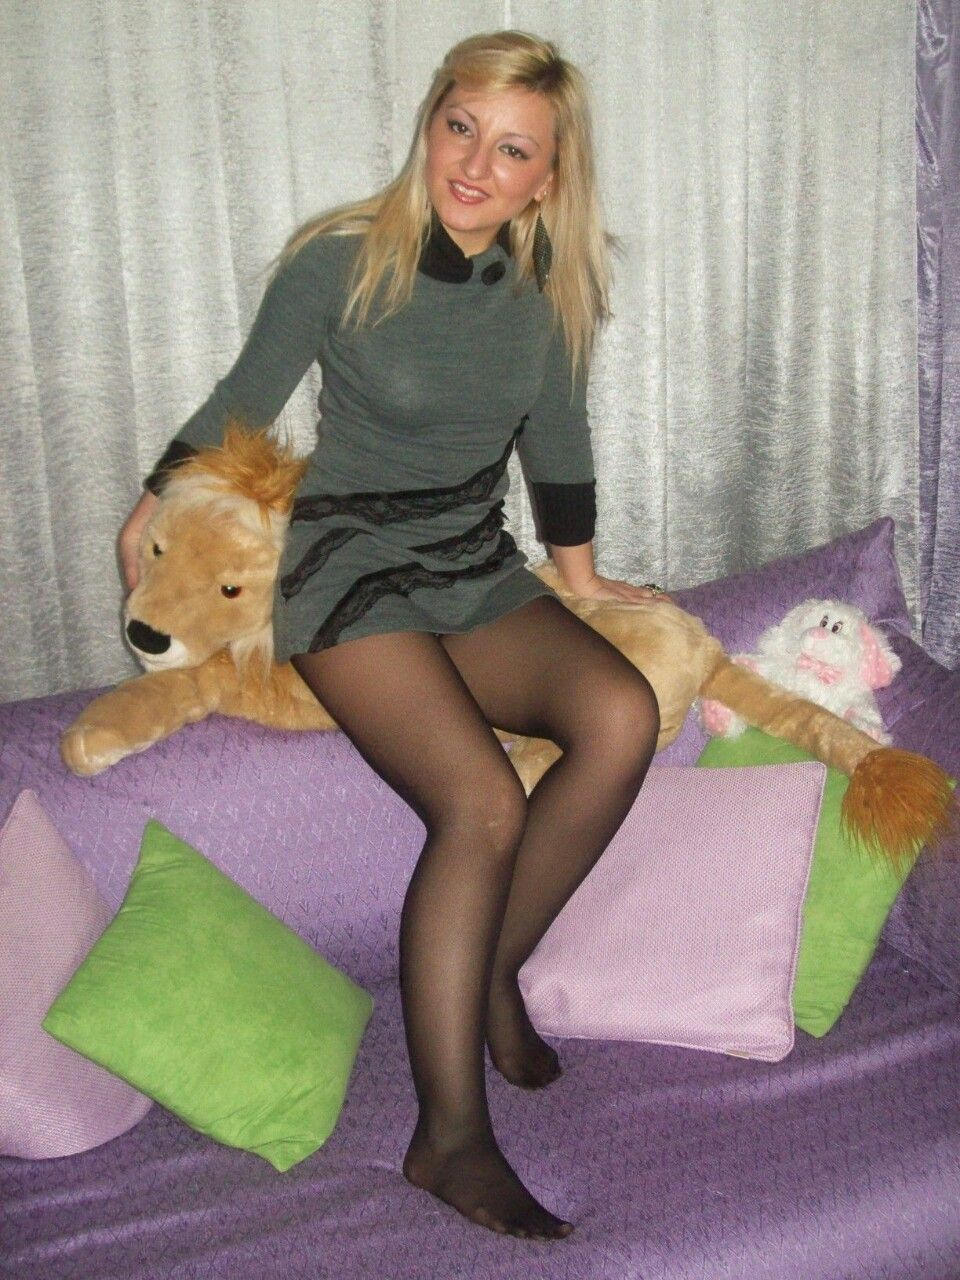 hot wife in knitted dress and black pantyhose without shoes. woman